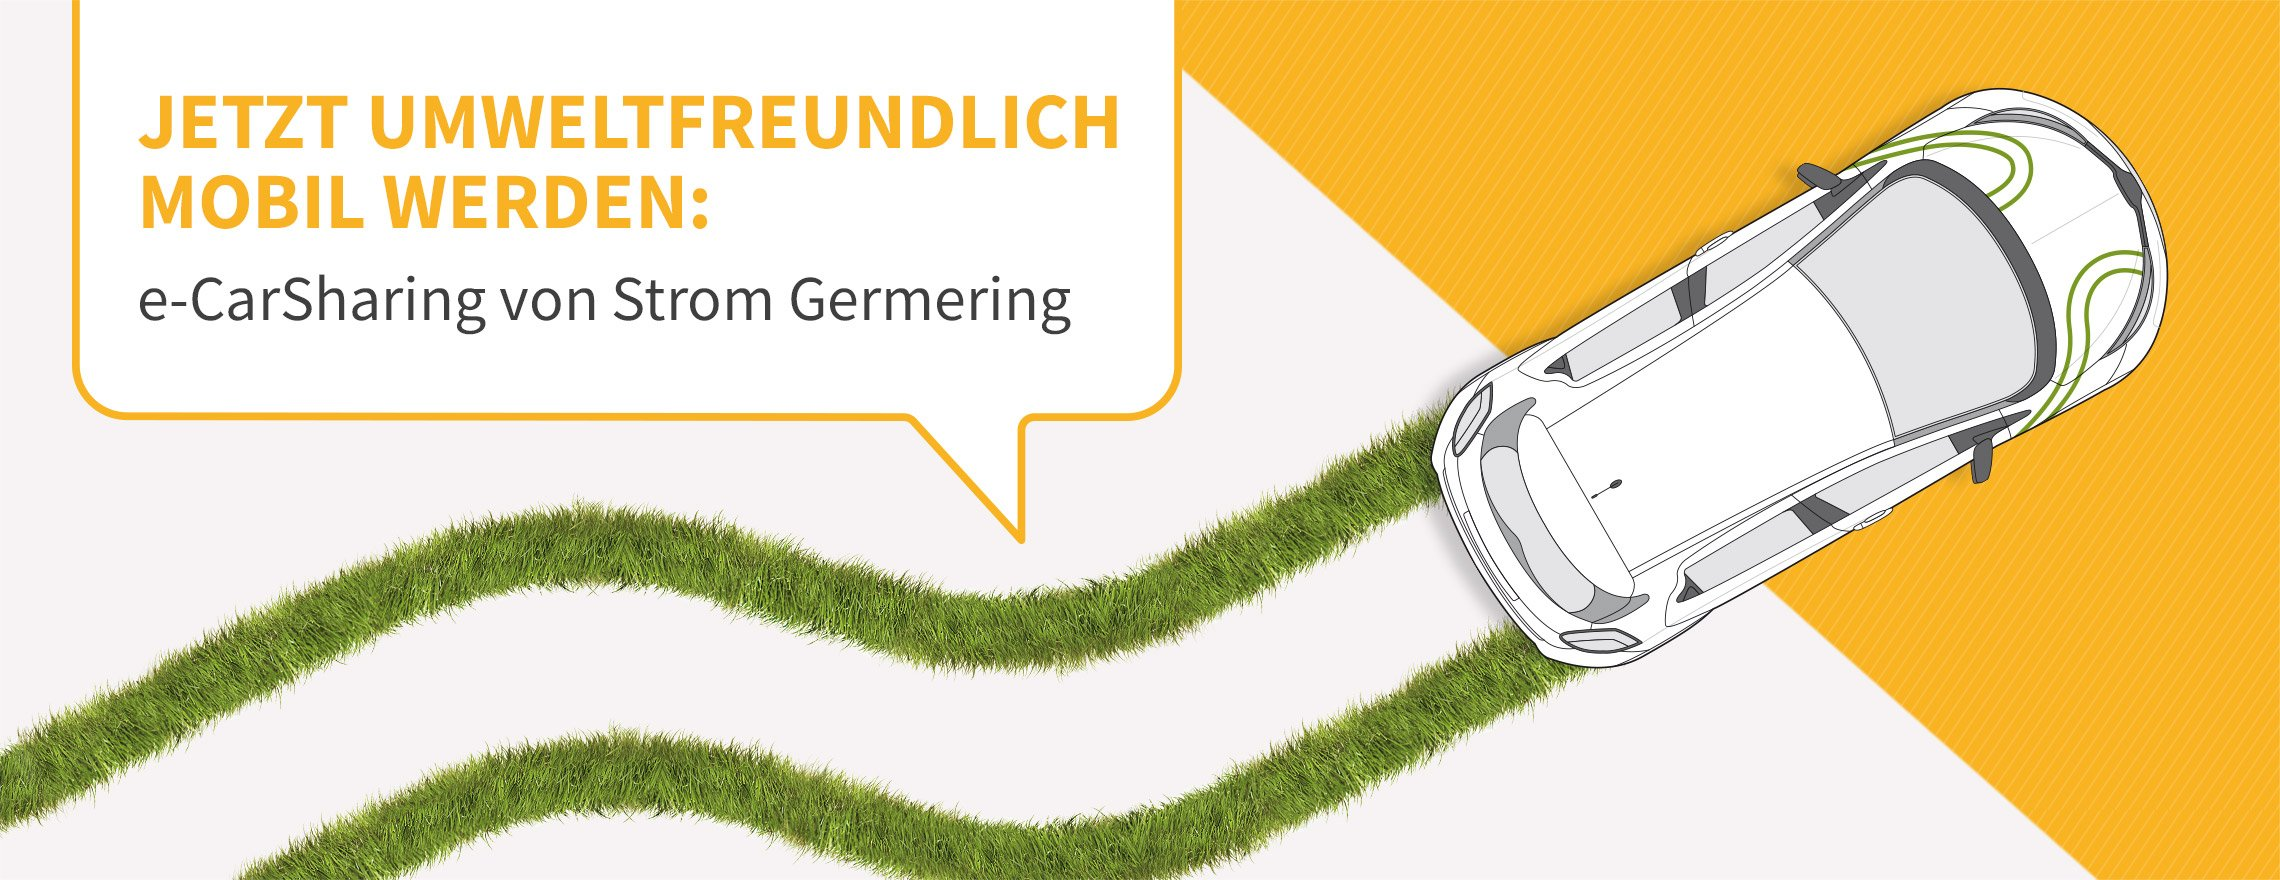 E-Carsharing in Germering